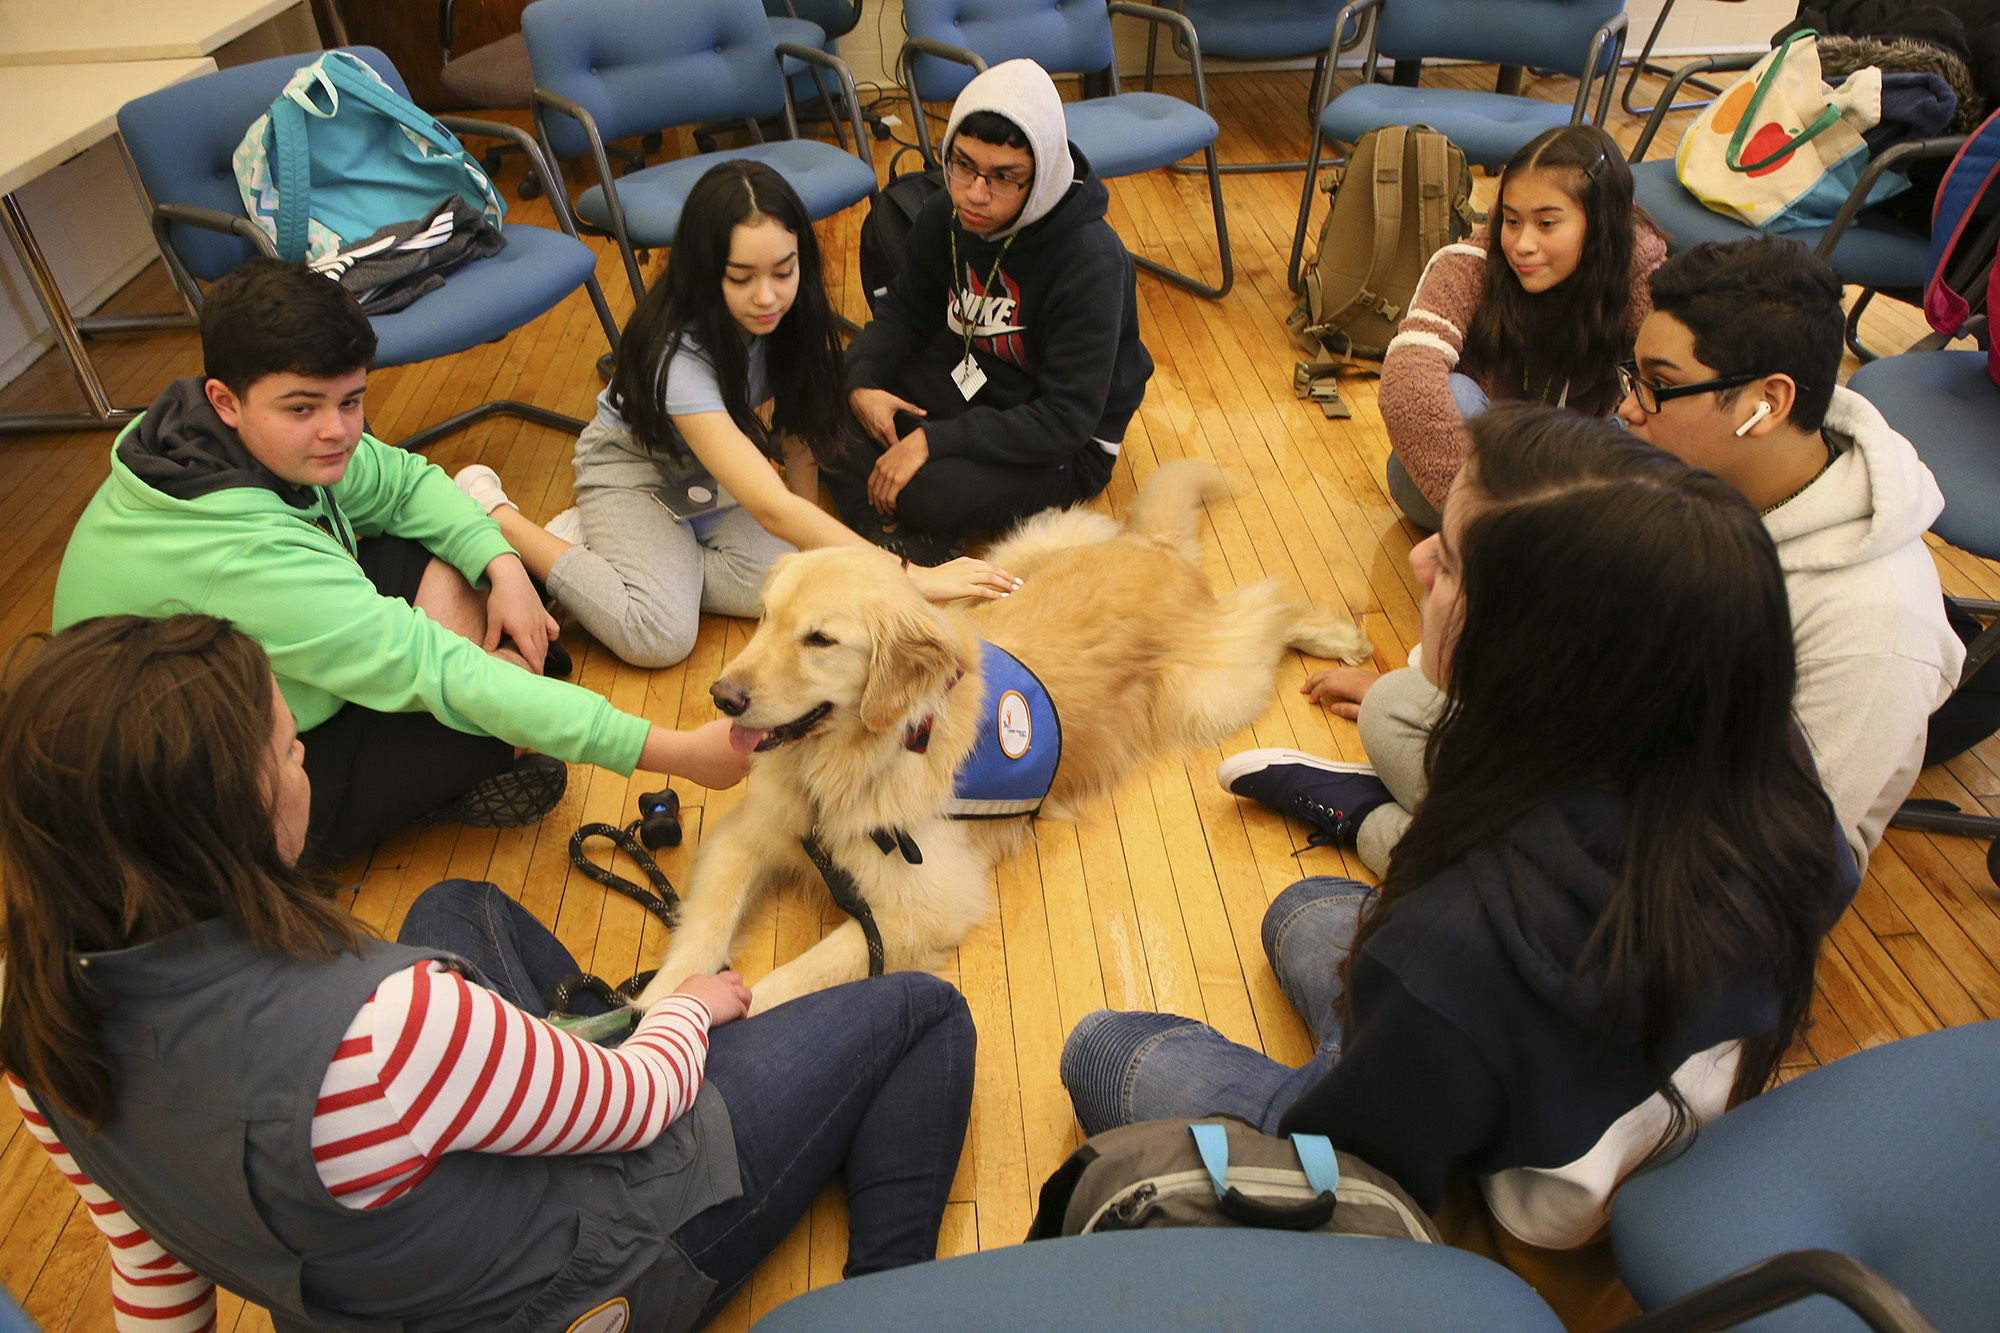 Kids play with a therapy dog to calm their nerves and anxiety. Credit: PA